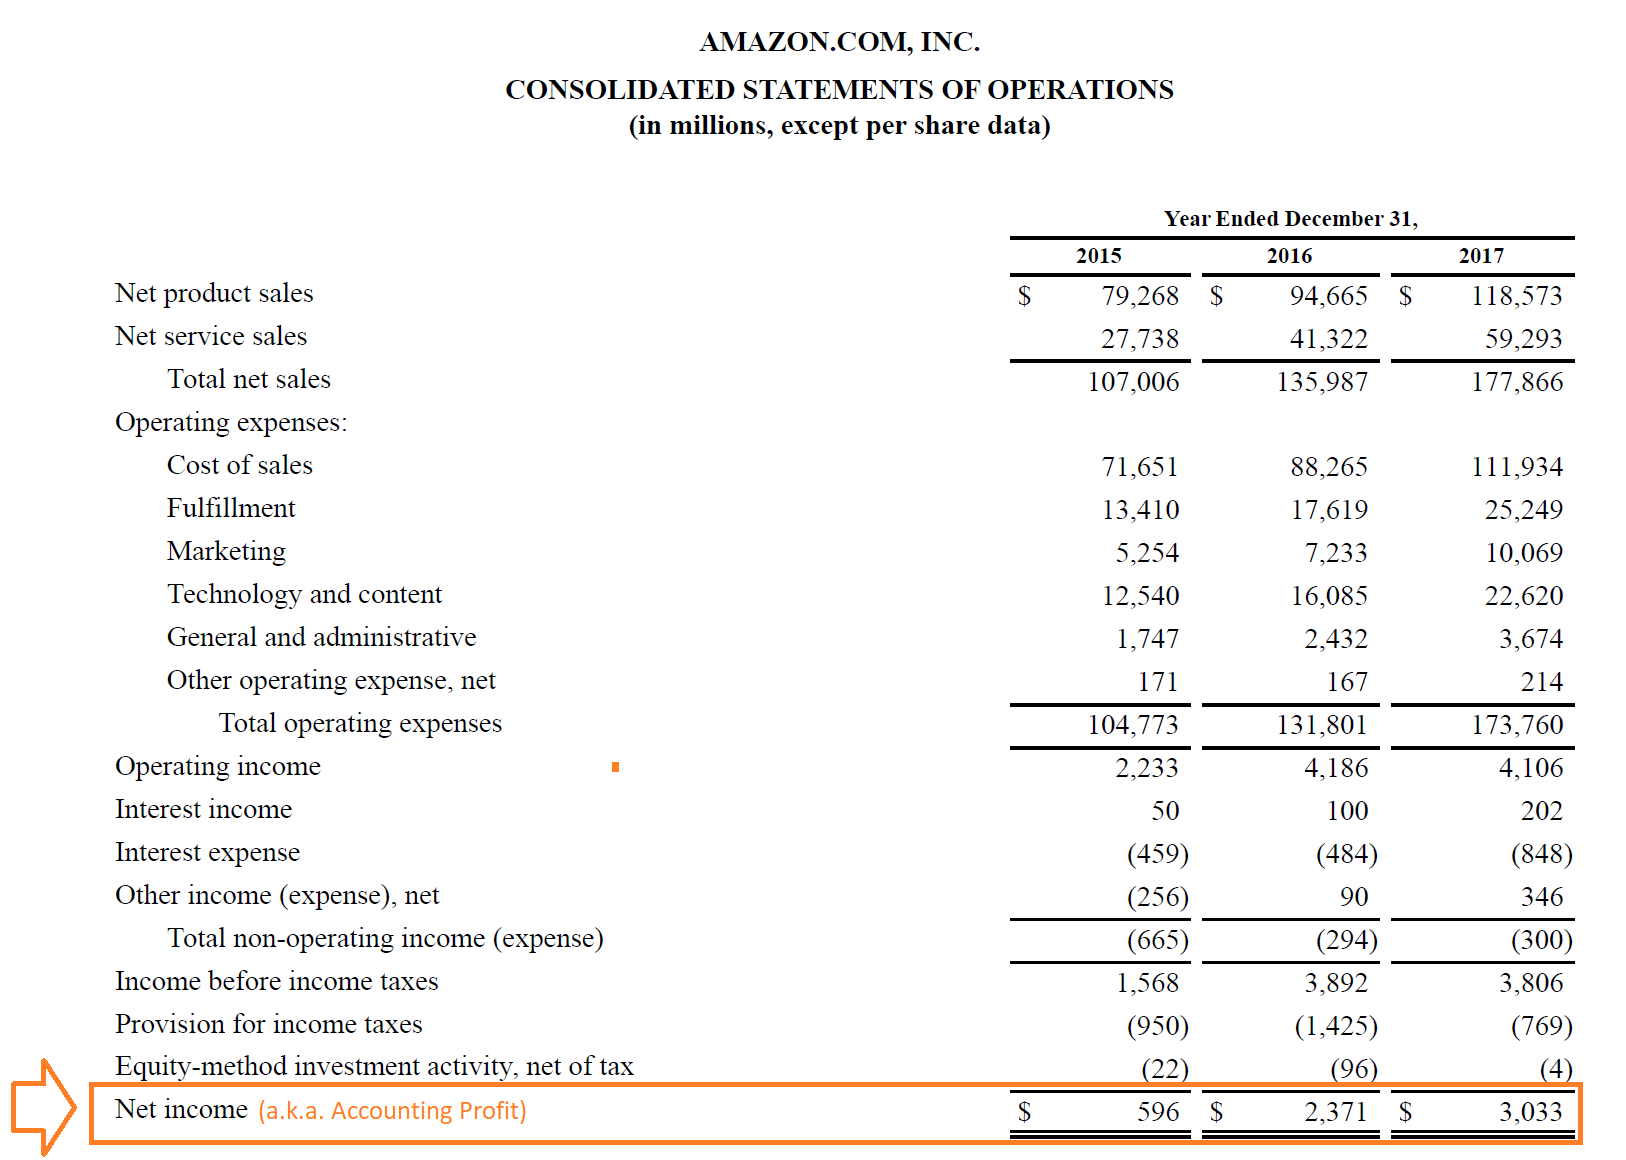 Amazon's 2017 Consolidated Statement of Operations